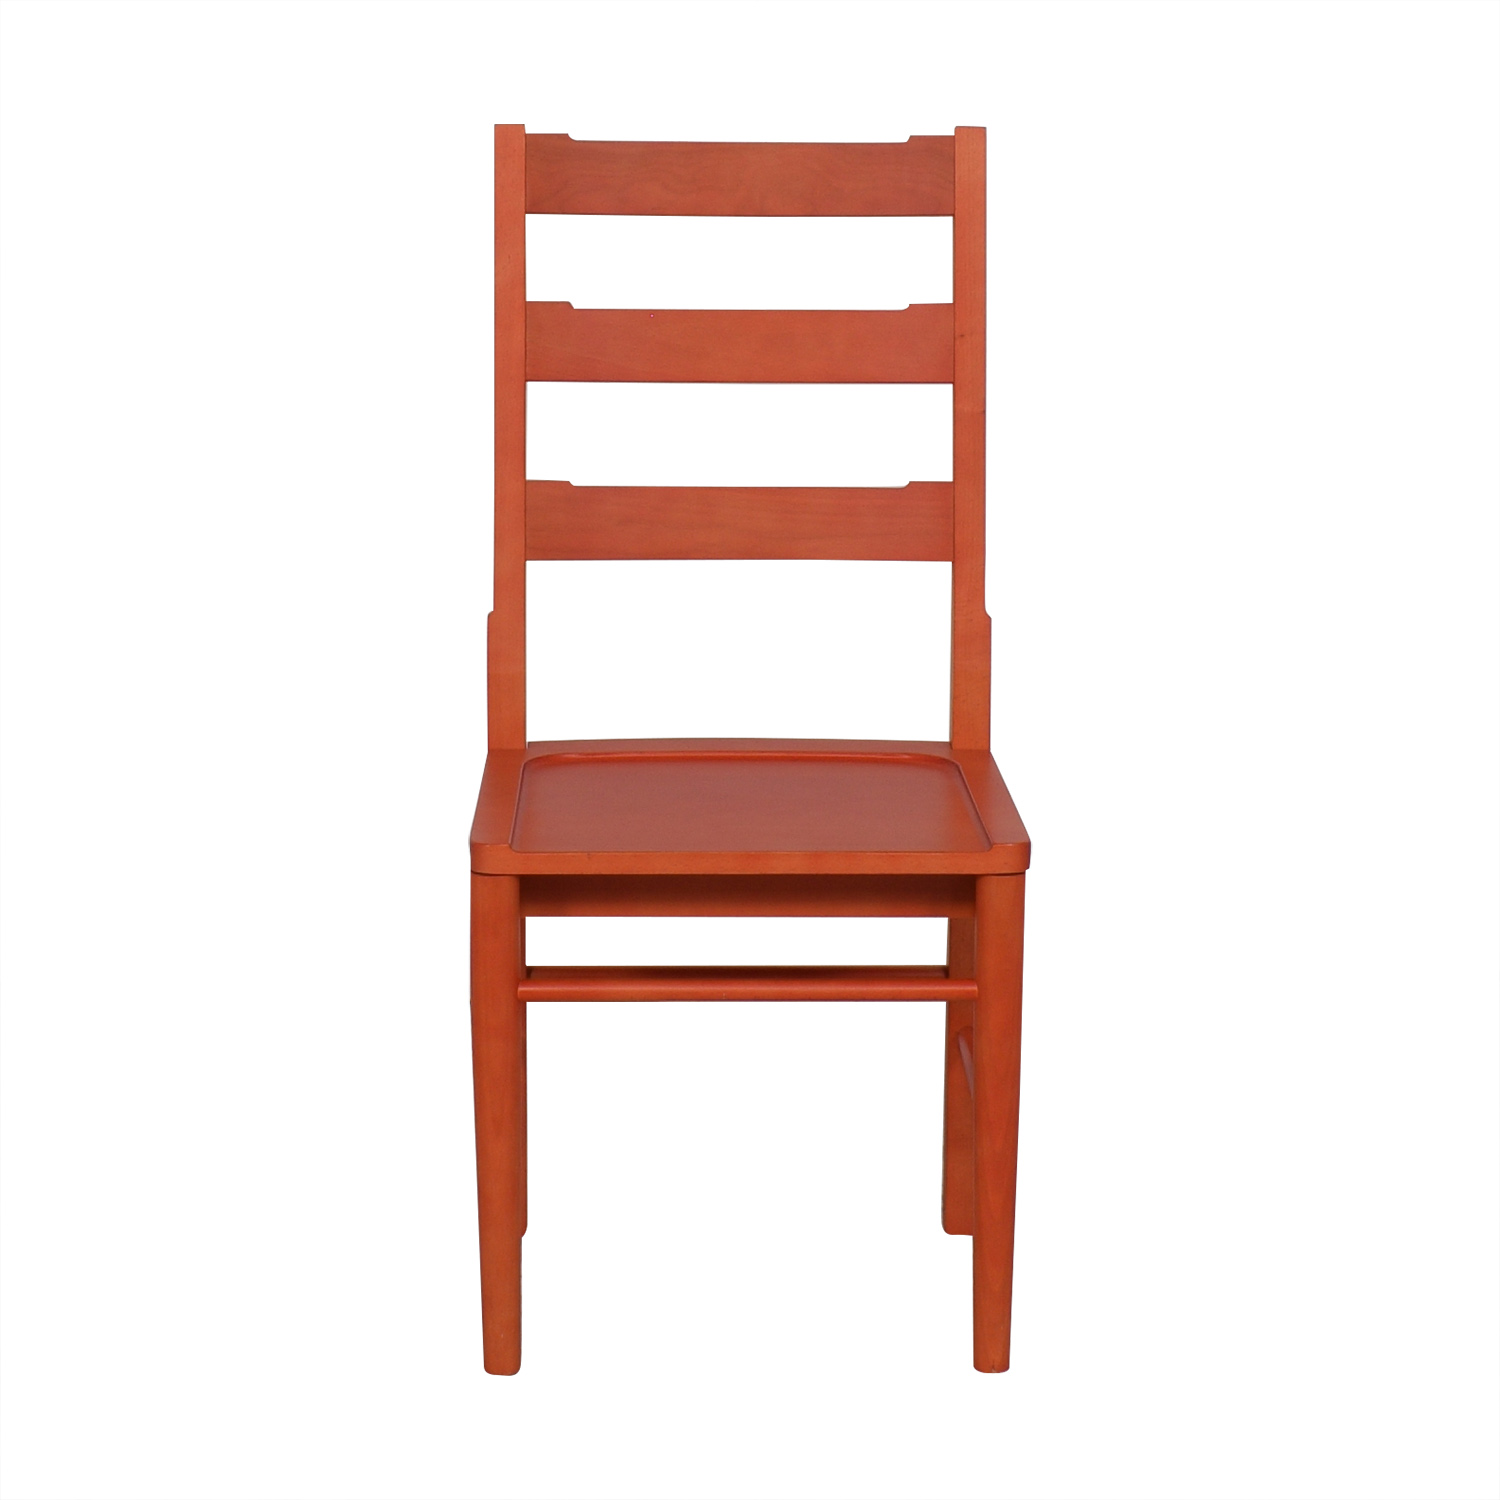 buy Rejuvenation O&G Ladderback Dining Chair Rejuvenation Chairs